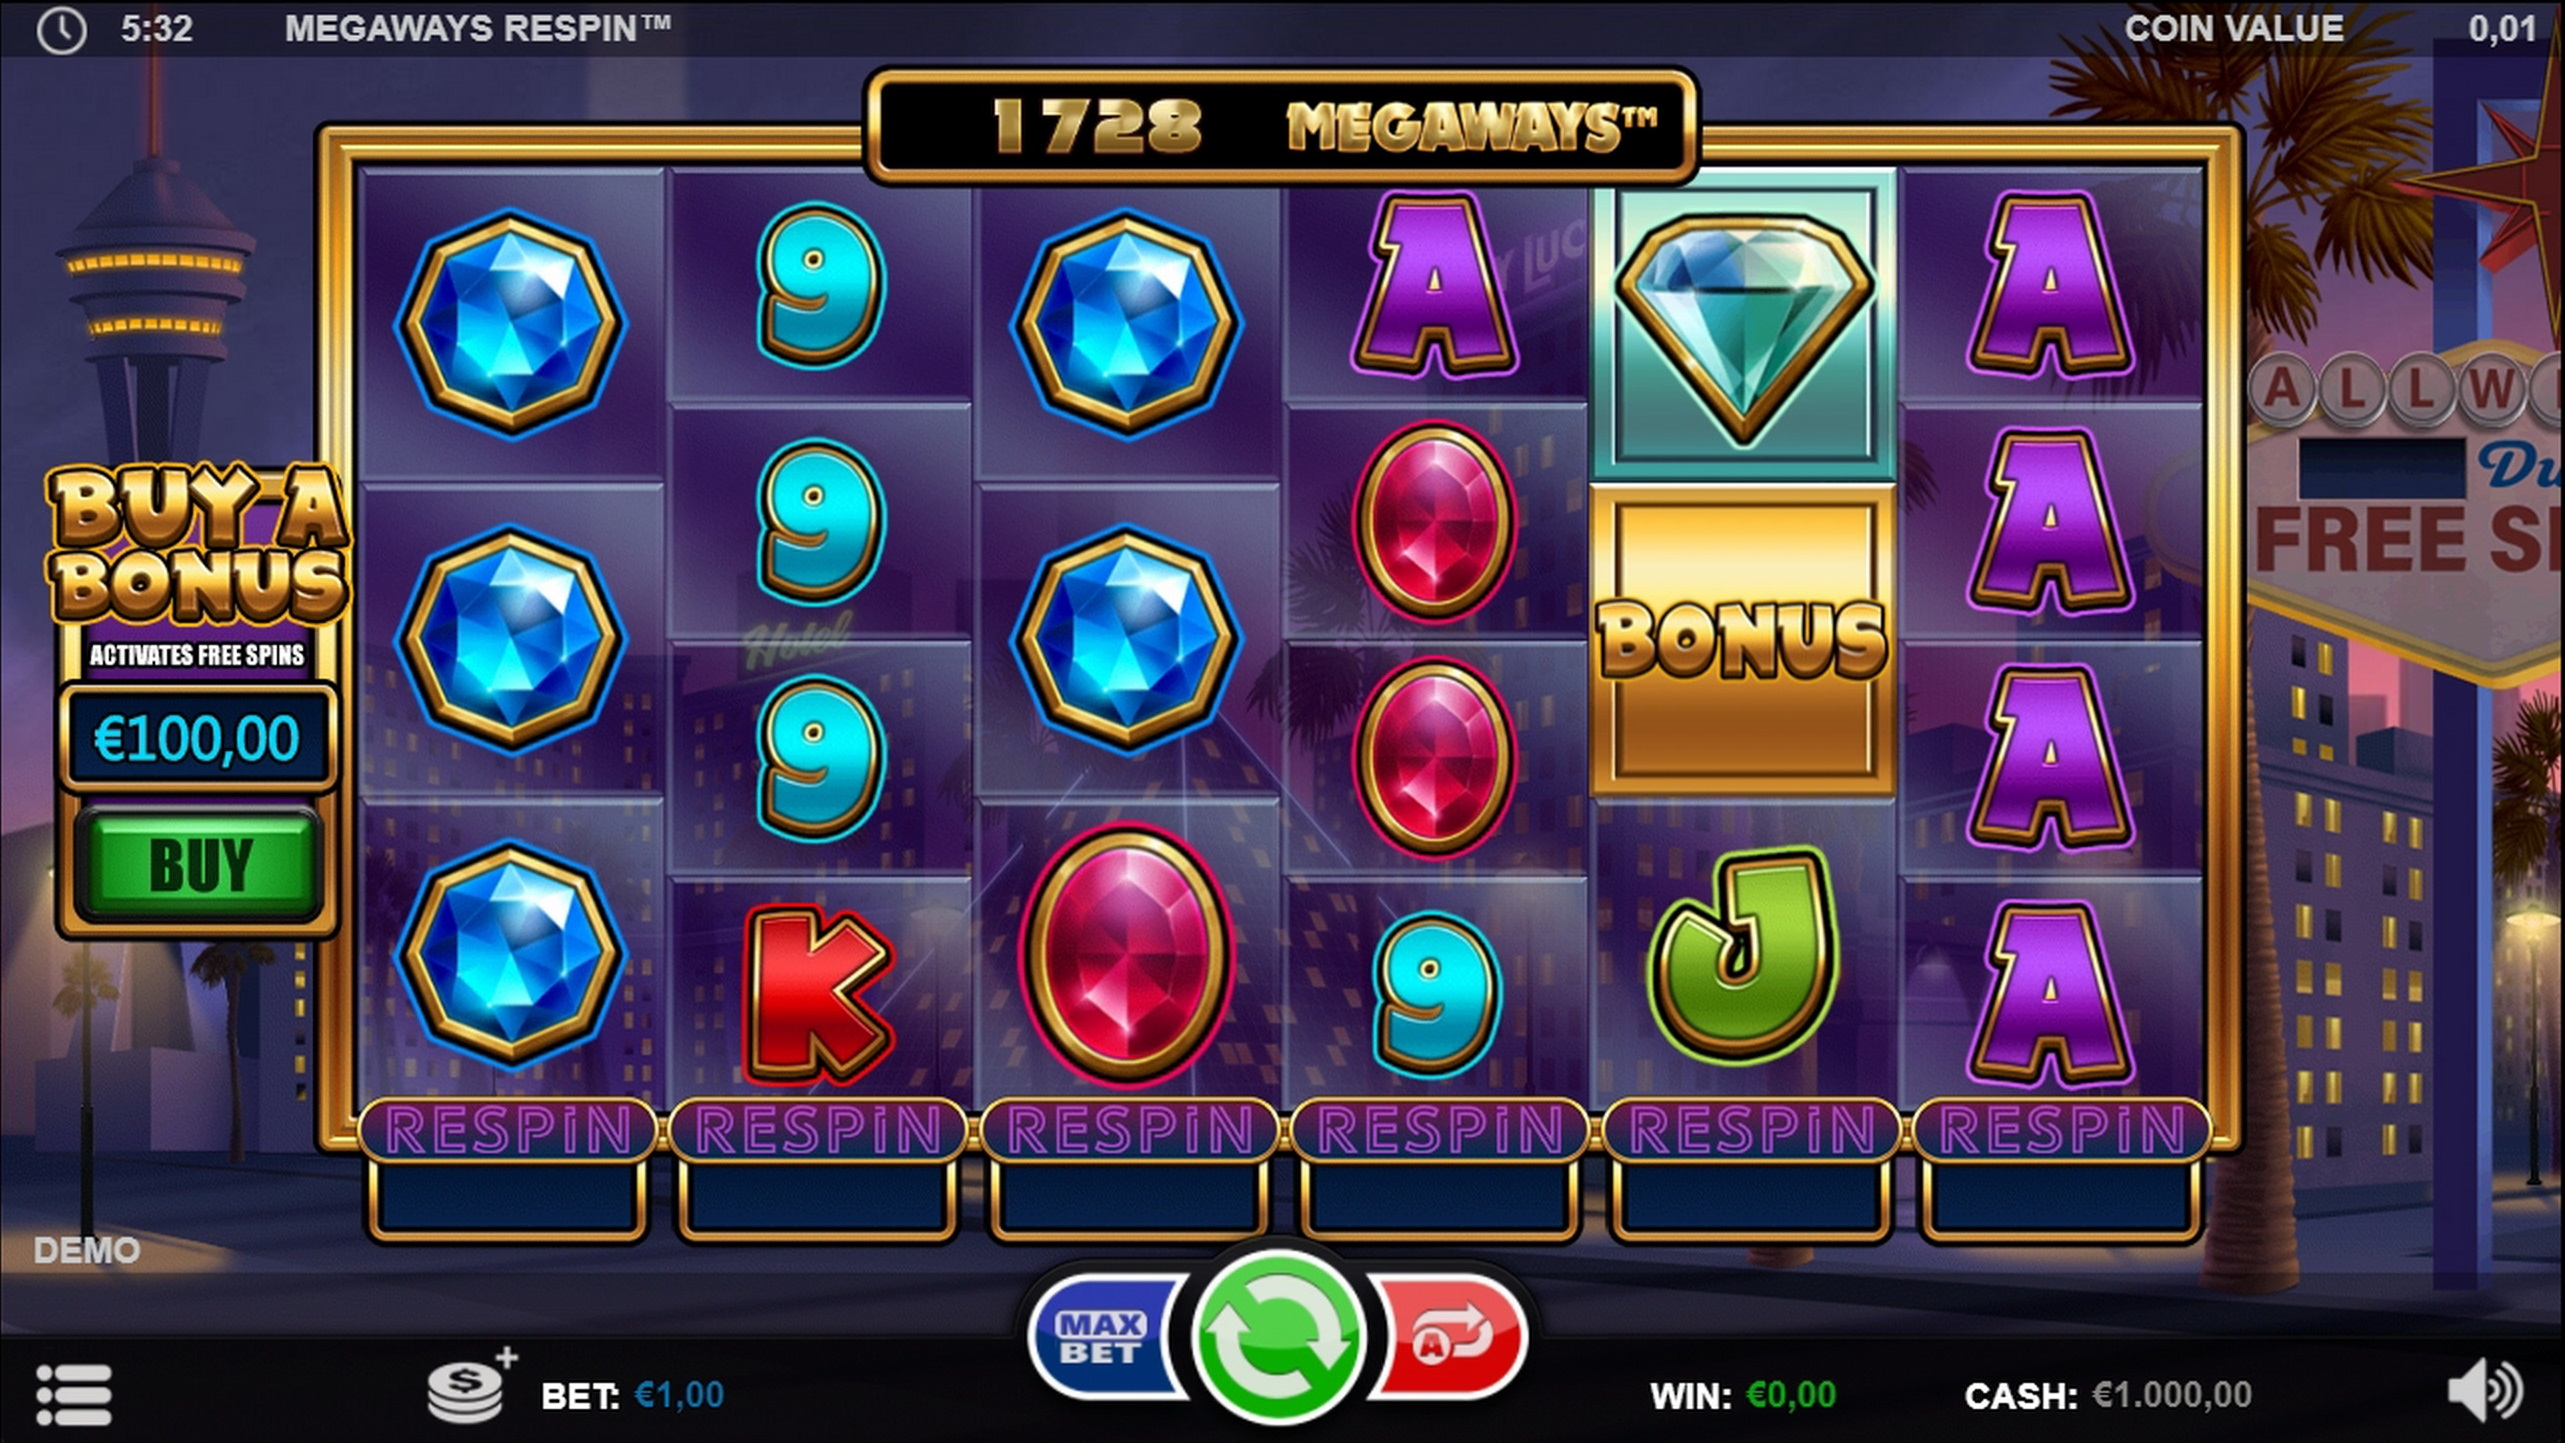 Reels in Megaways Respin Slot Game by Games Inc